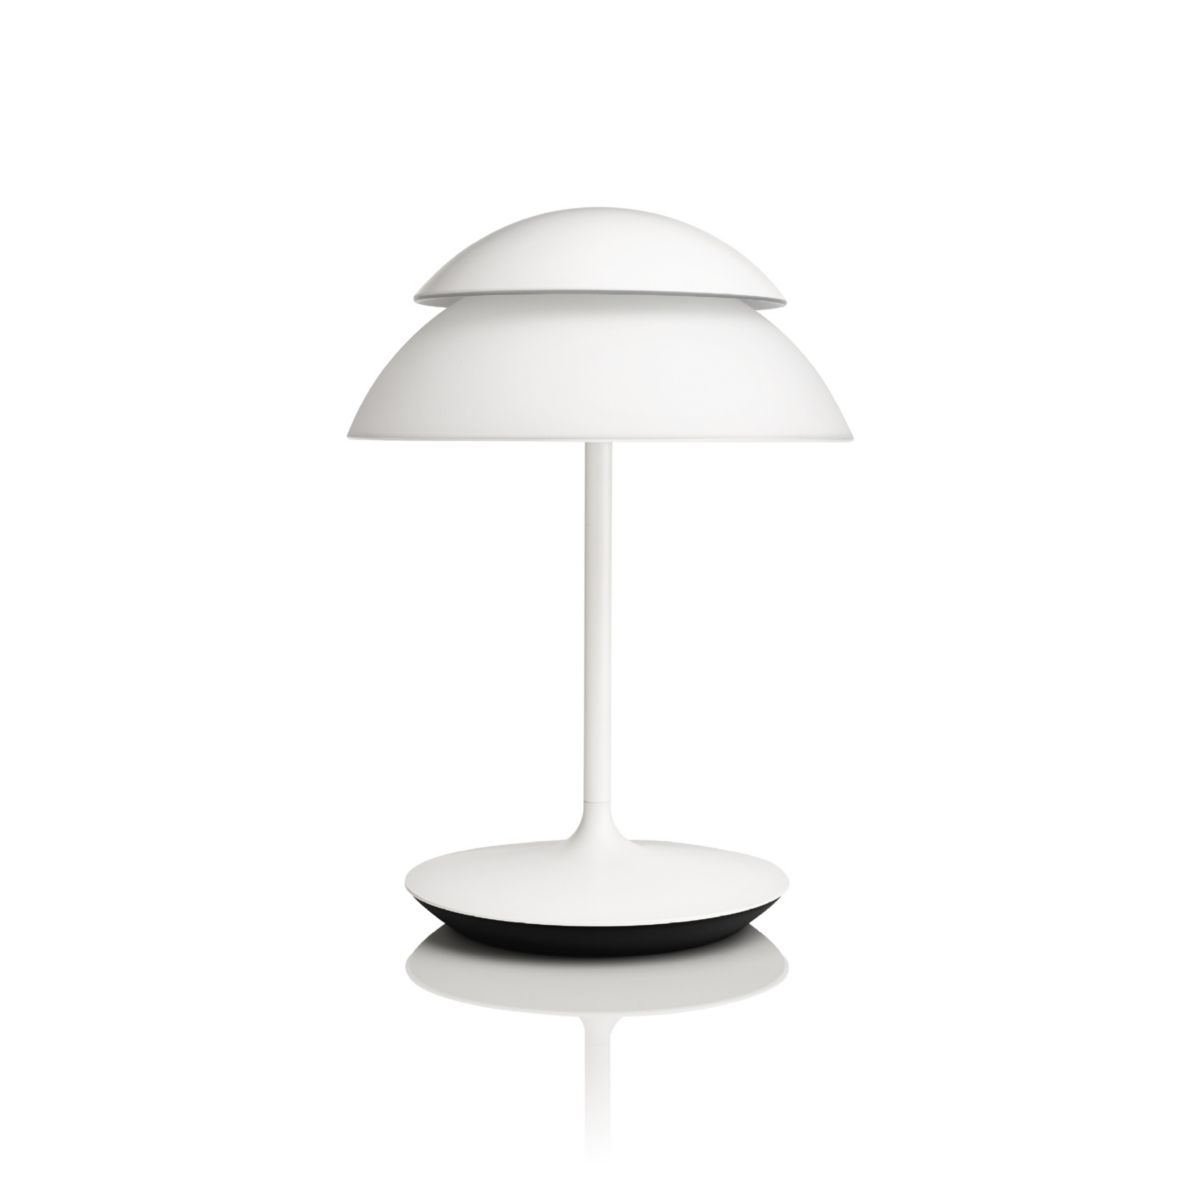 Hue White And Color Ambiance Beyond Table Lamp 712023148 Philips